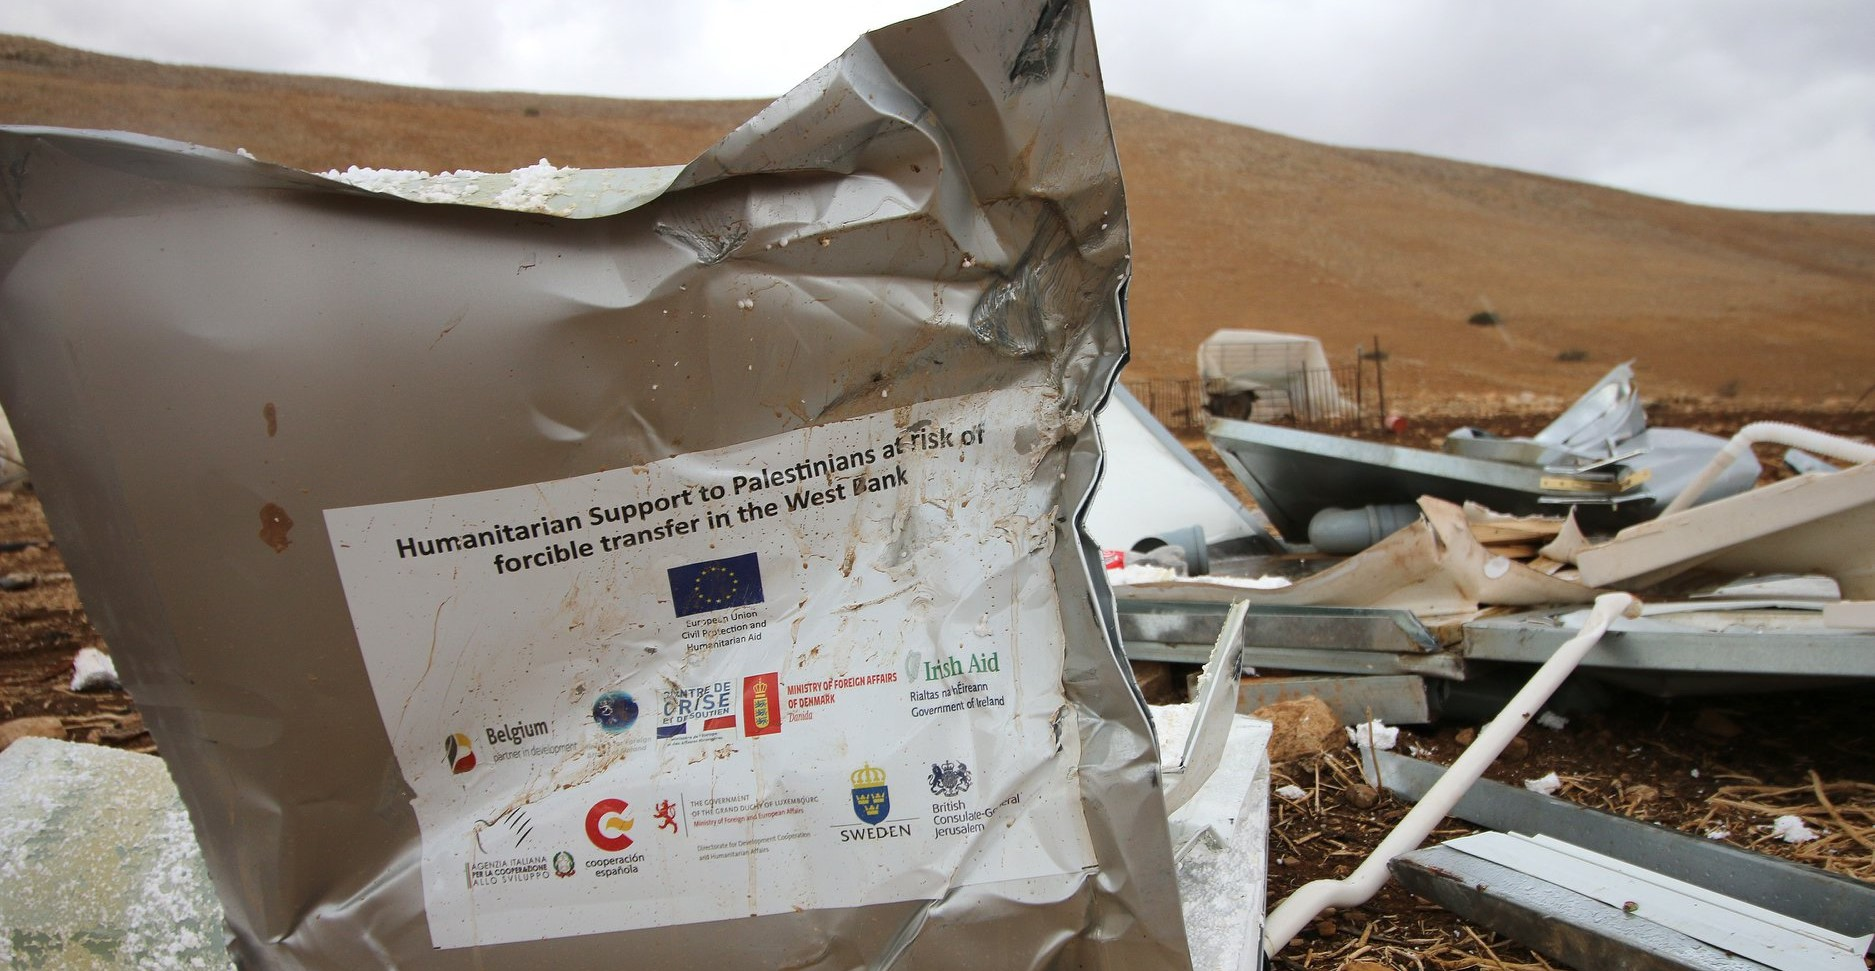 """""""Humanitarian Support to Palestinians at risk of forcible transfer in the West Bank""""; Khirbet Humsa after the Tuesday, November 3, demolition."""